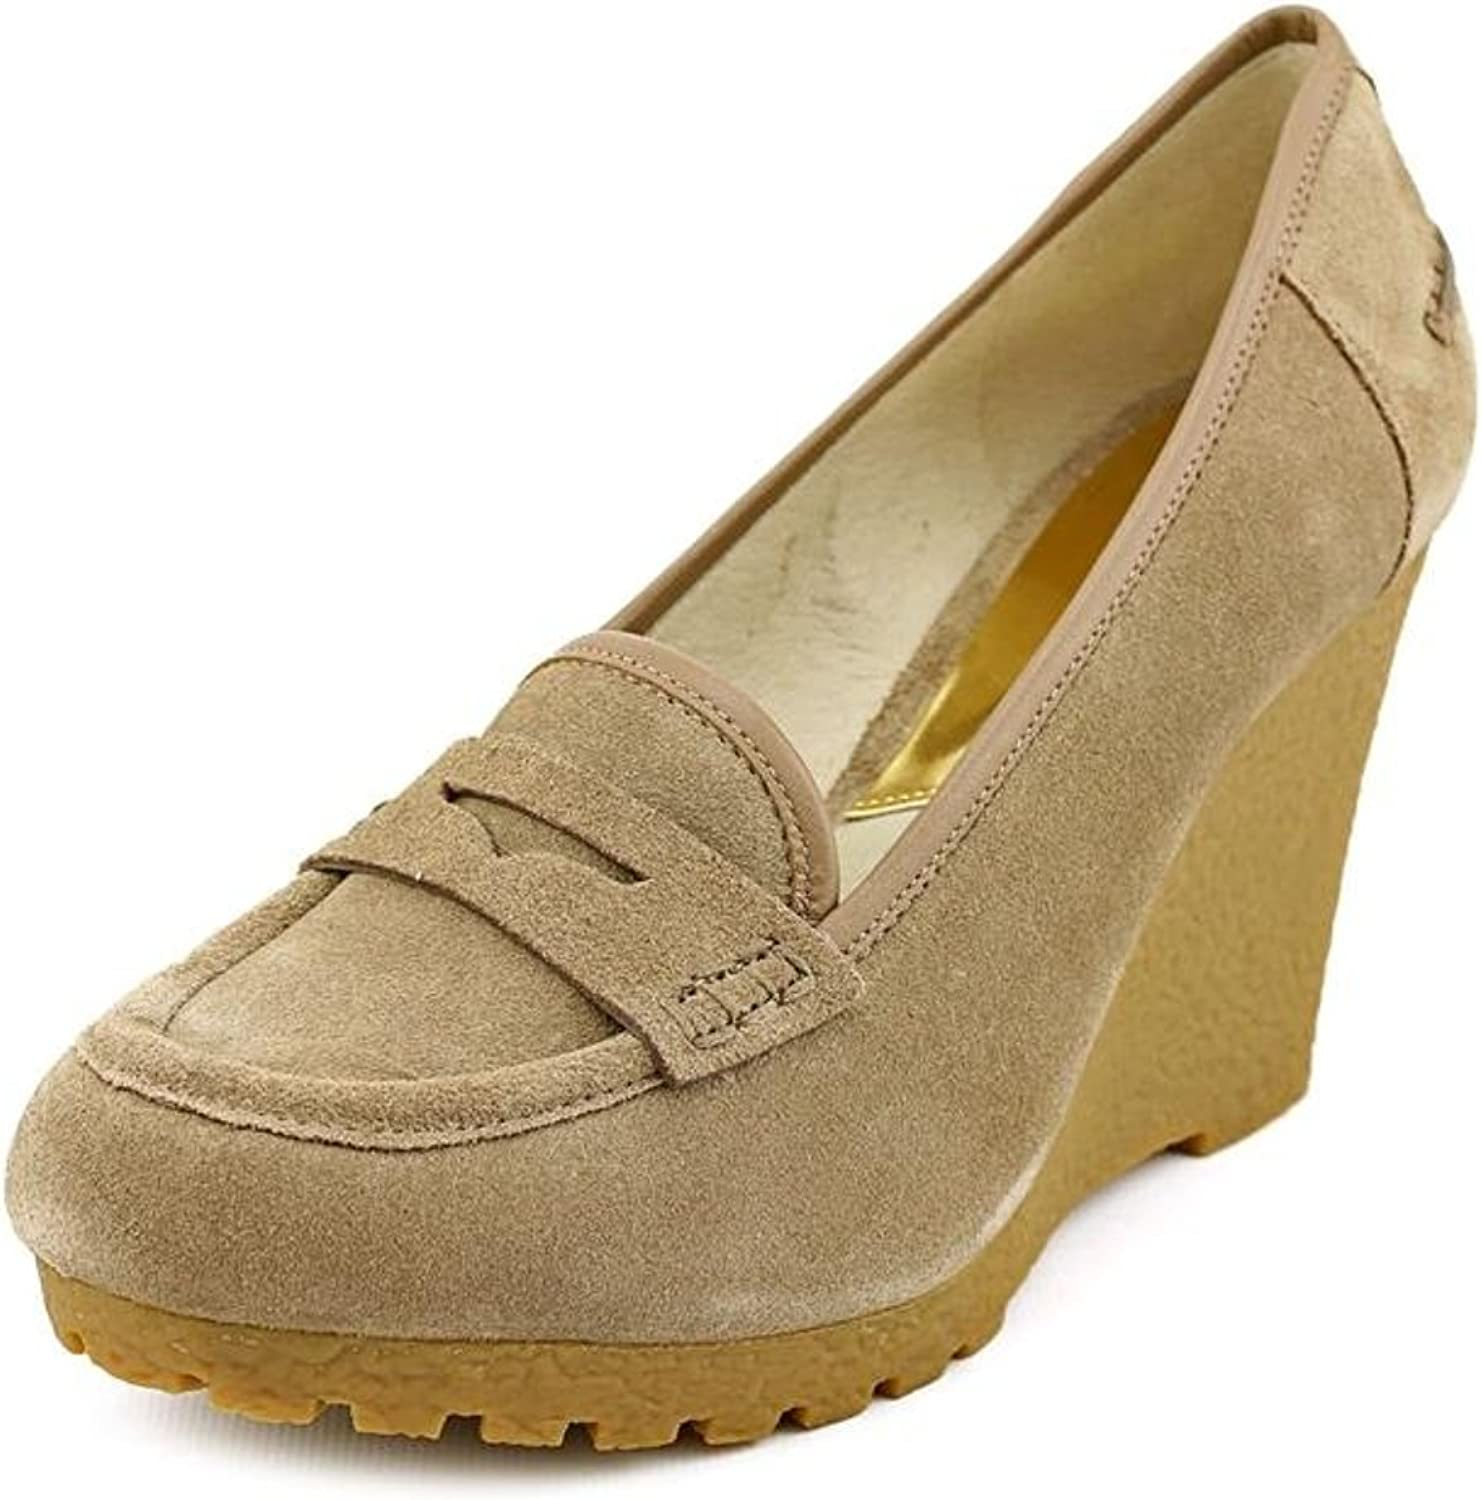 Michael Kors Rory Loafer Womens Suede